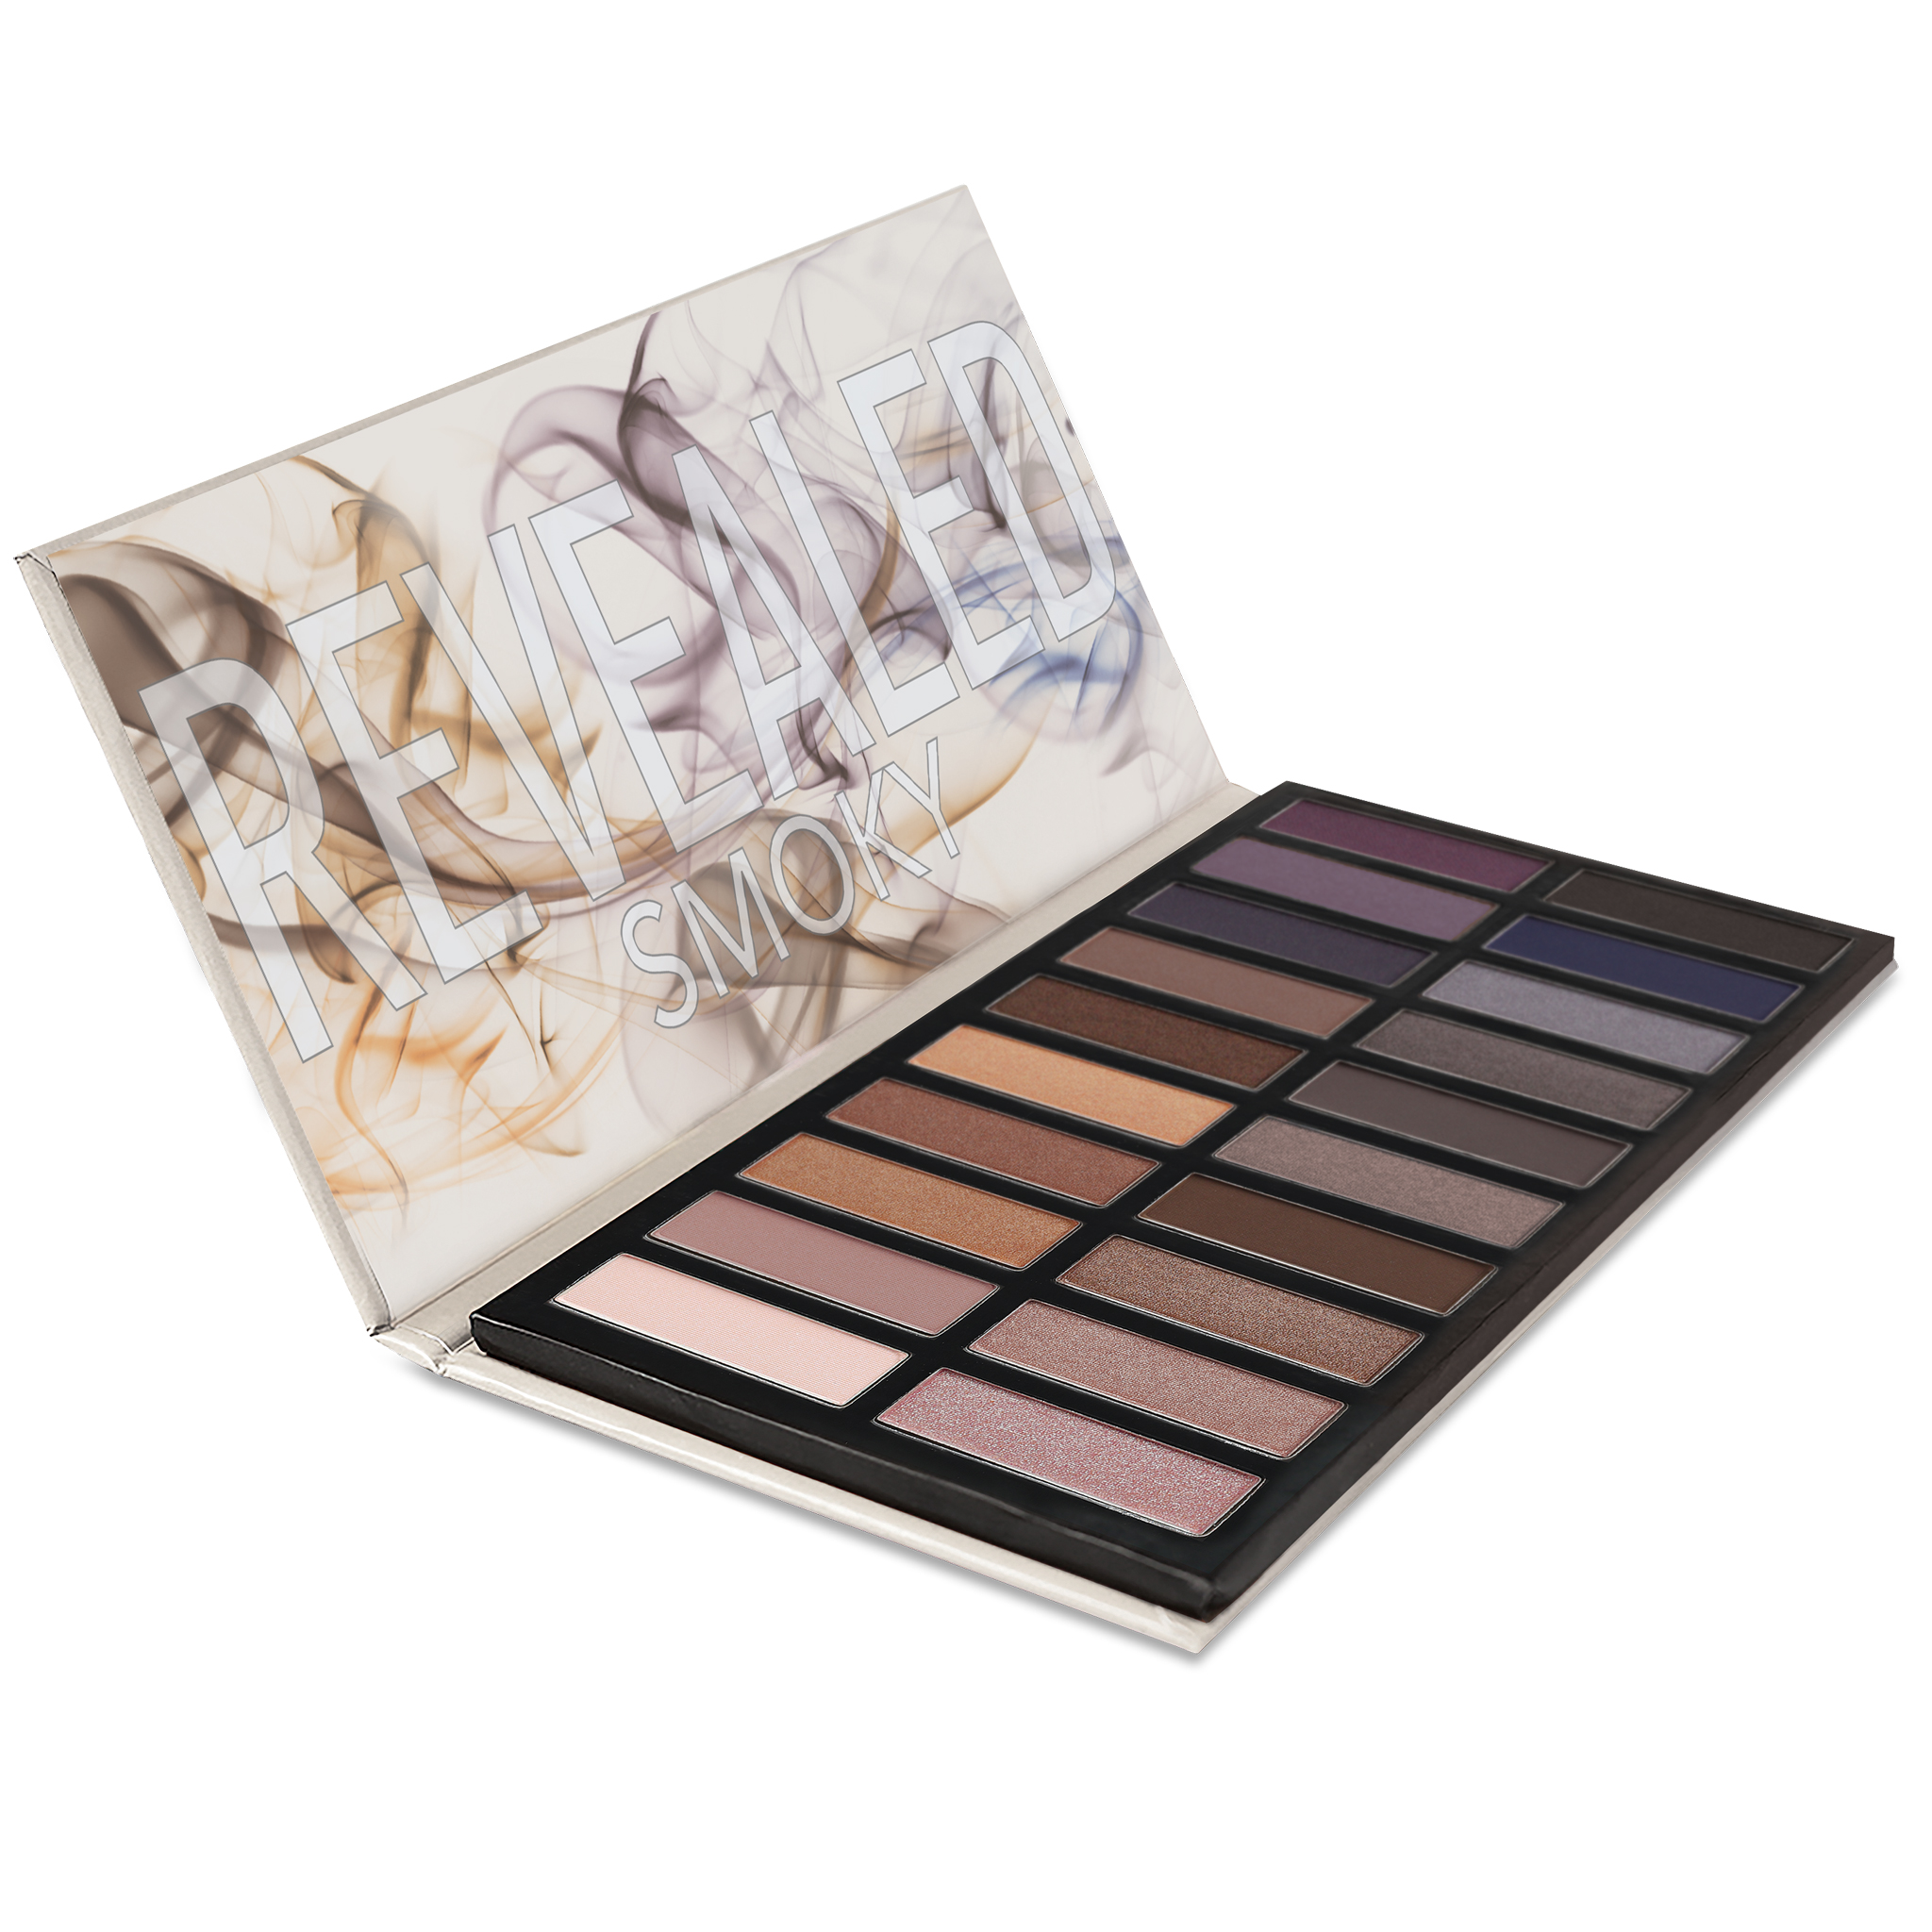 Coastal Scents Revealed Smoky Palette